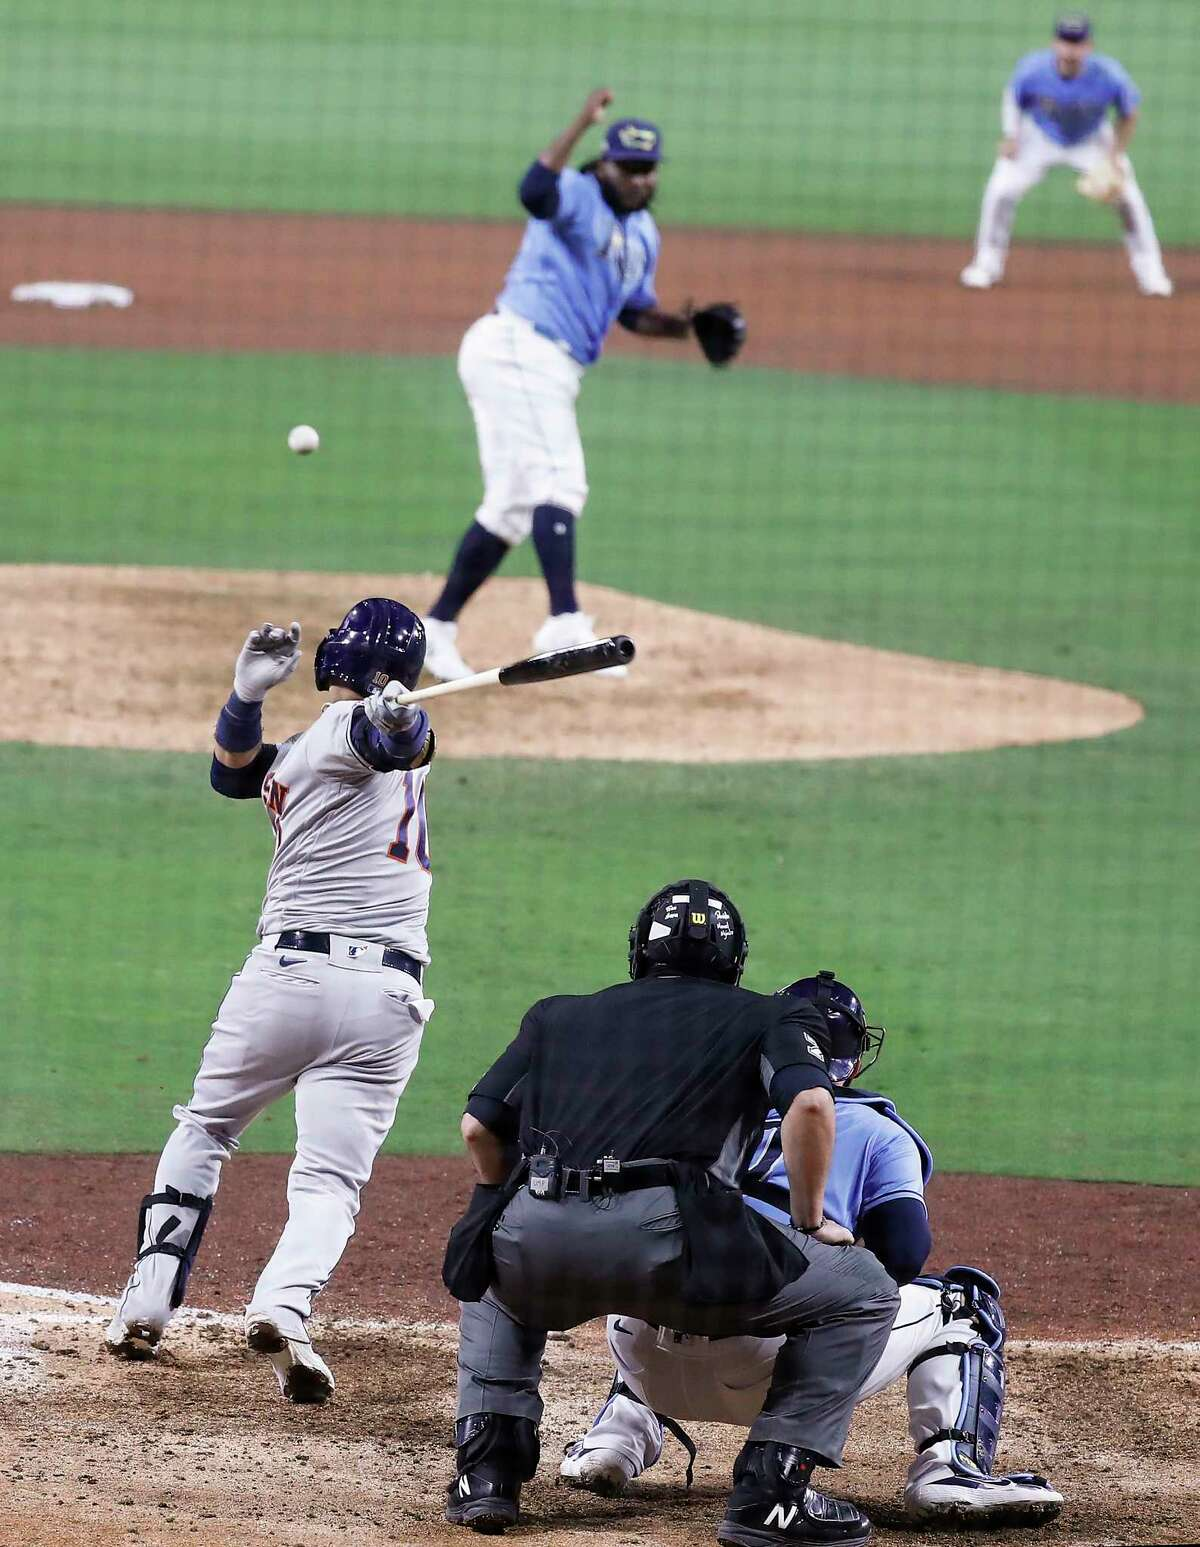 Houston Astros Yuli Gurriel (10) slaps a grounder up the middle off Tampa Bay Rays Diego Castillo that was turned in the eighth inning of Game 1 of the American League Championship Series at Petco Park Sunday, Oct. 11, 2020, in San Diego.